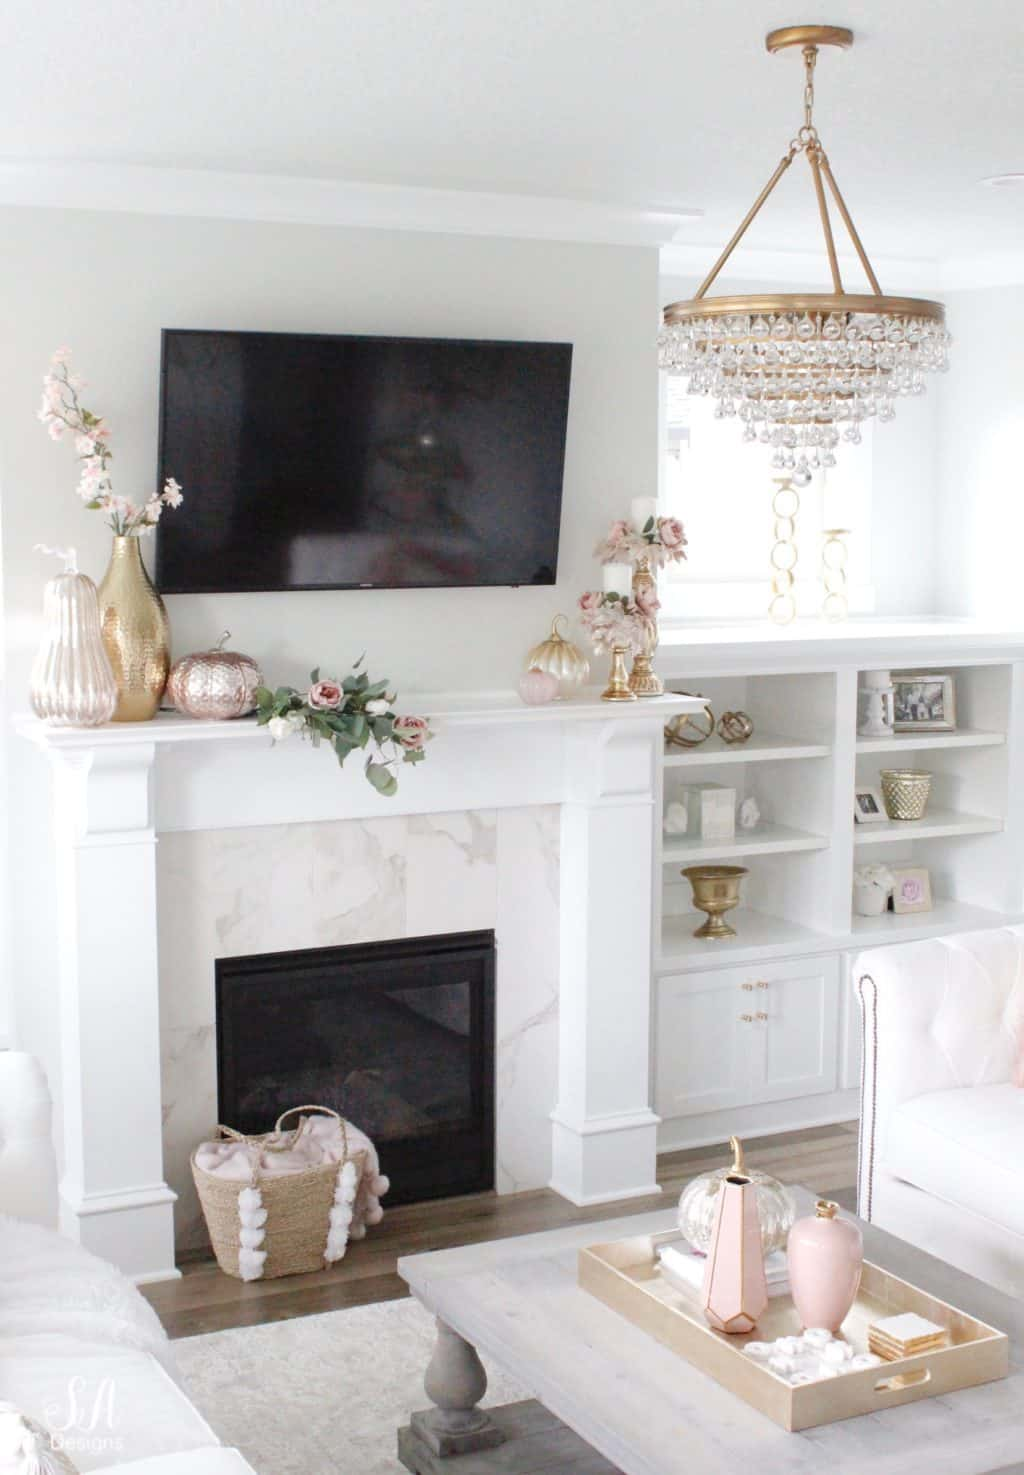 Mantel Decor With A Tv 6 Ways To Pull It Off Chrissy Marie Blog